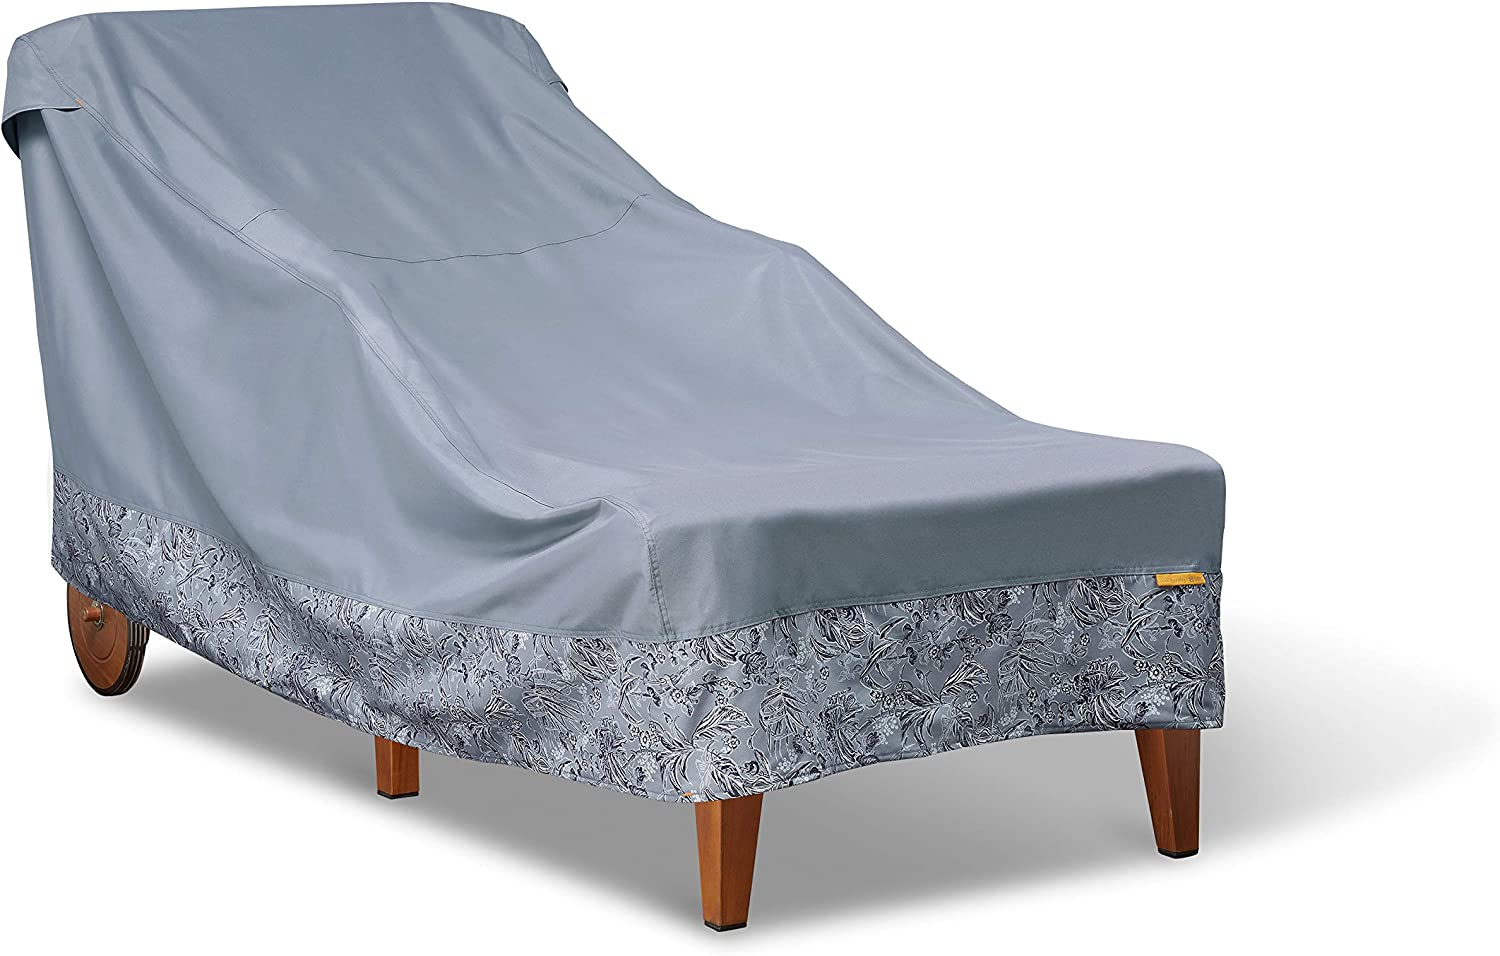 Vera Bradley by Classic Accessories Water-Resistant Patio Chaise Lounge Cover, 78 x 34 x 34 Inch, Rain Forest Toile Gray